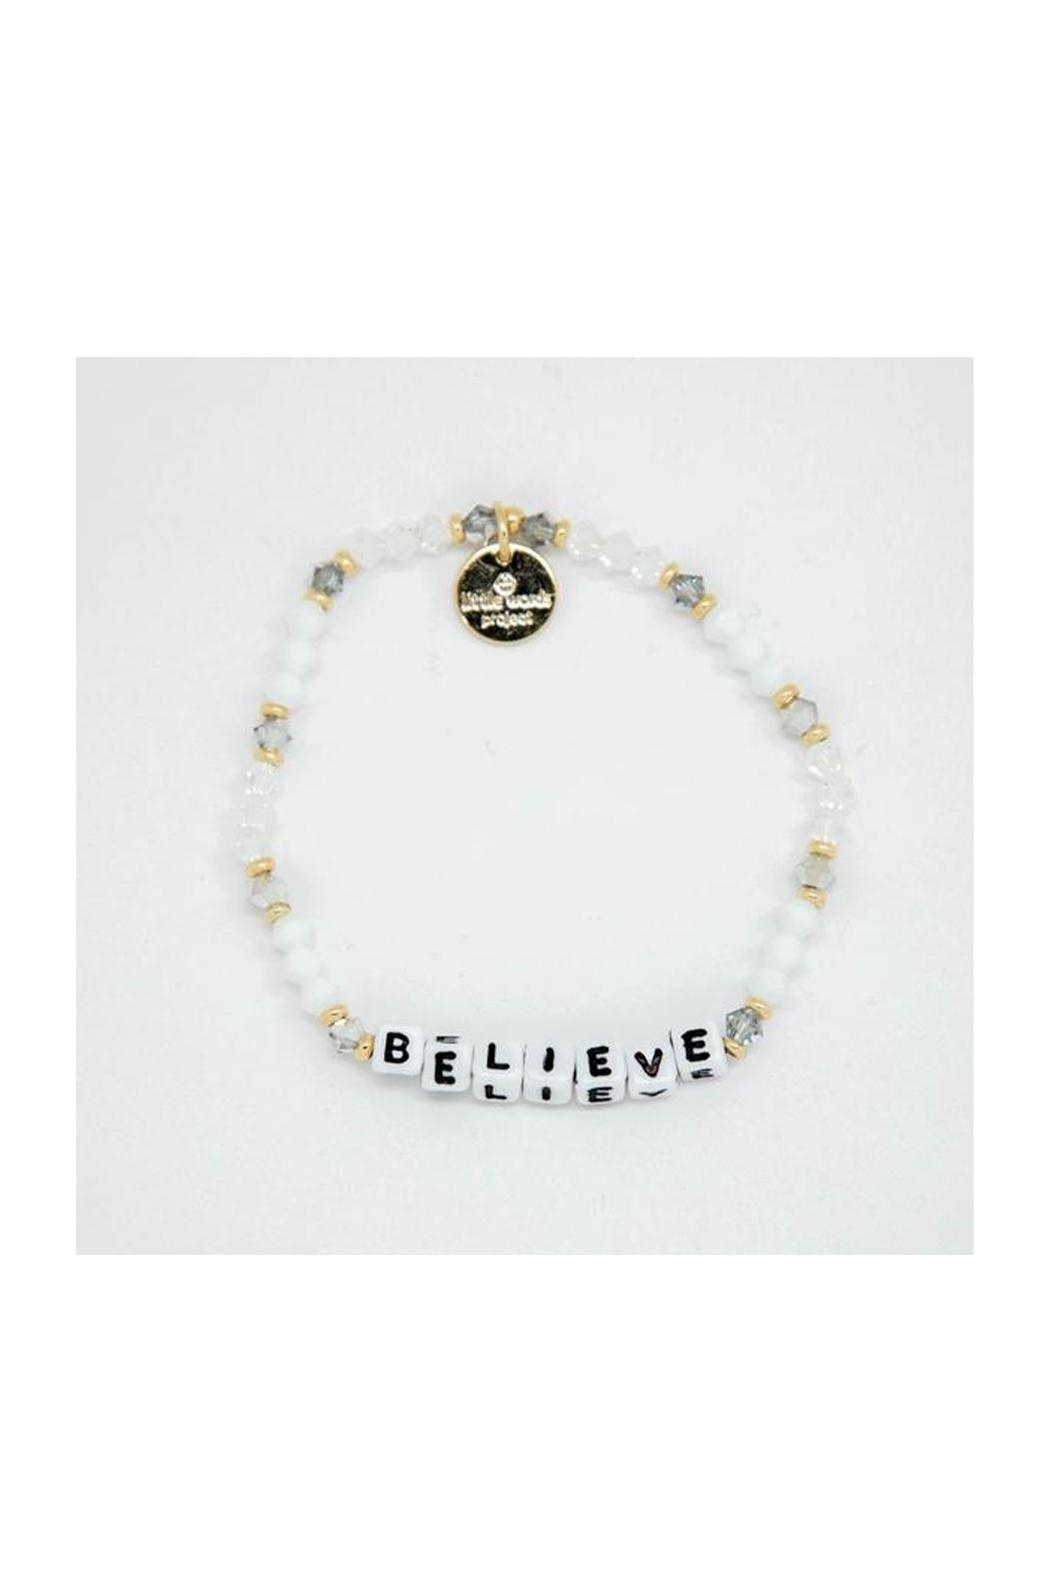 Private Label Little Words Project - Believe - Main Image